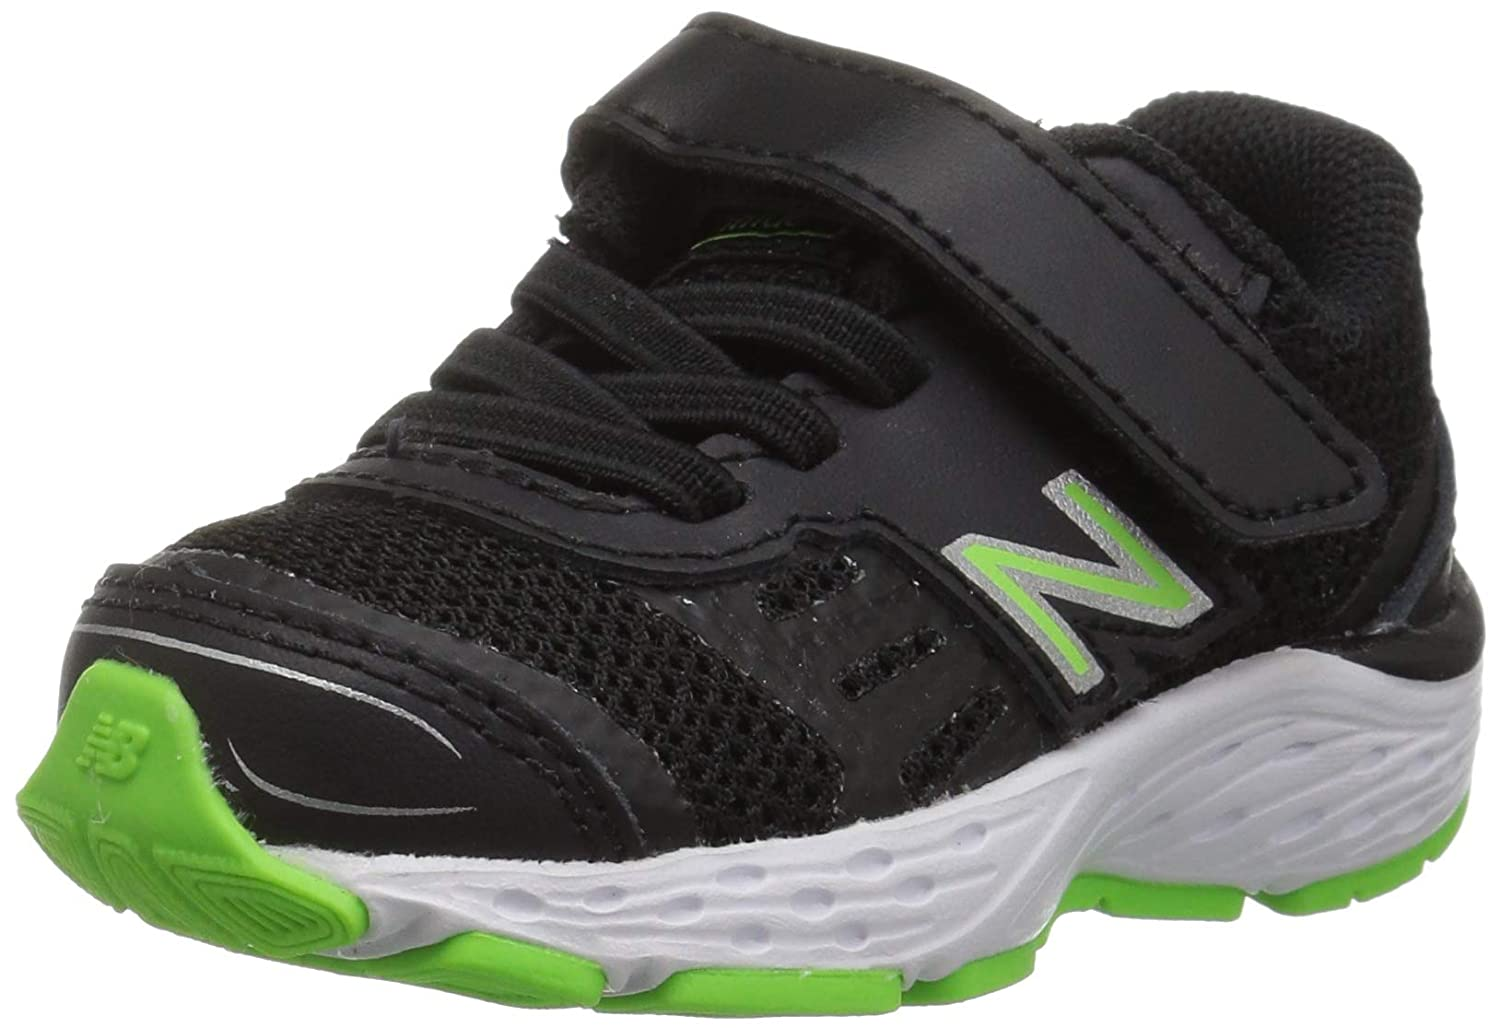 お気に入り [ニューバランス] ユニセックスキッズ NB19-IA680AG-Infant Green Girls B07BQTVN6X Black Black/Rbg/Rbg Green W 幼児(1~4才) 幼児(1~4才)|Black/Rbg Green|6.5 W US Toddler, 長谷井商店:4756ba00 --- mfphoto.ie